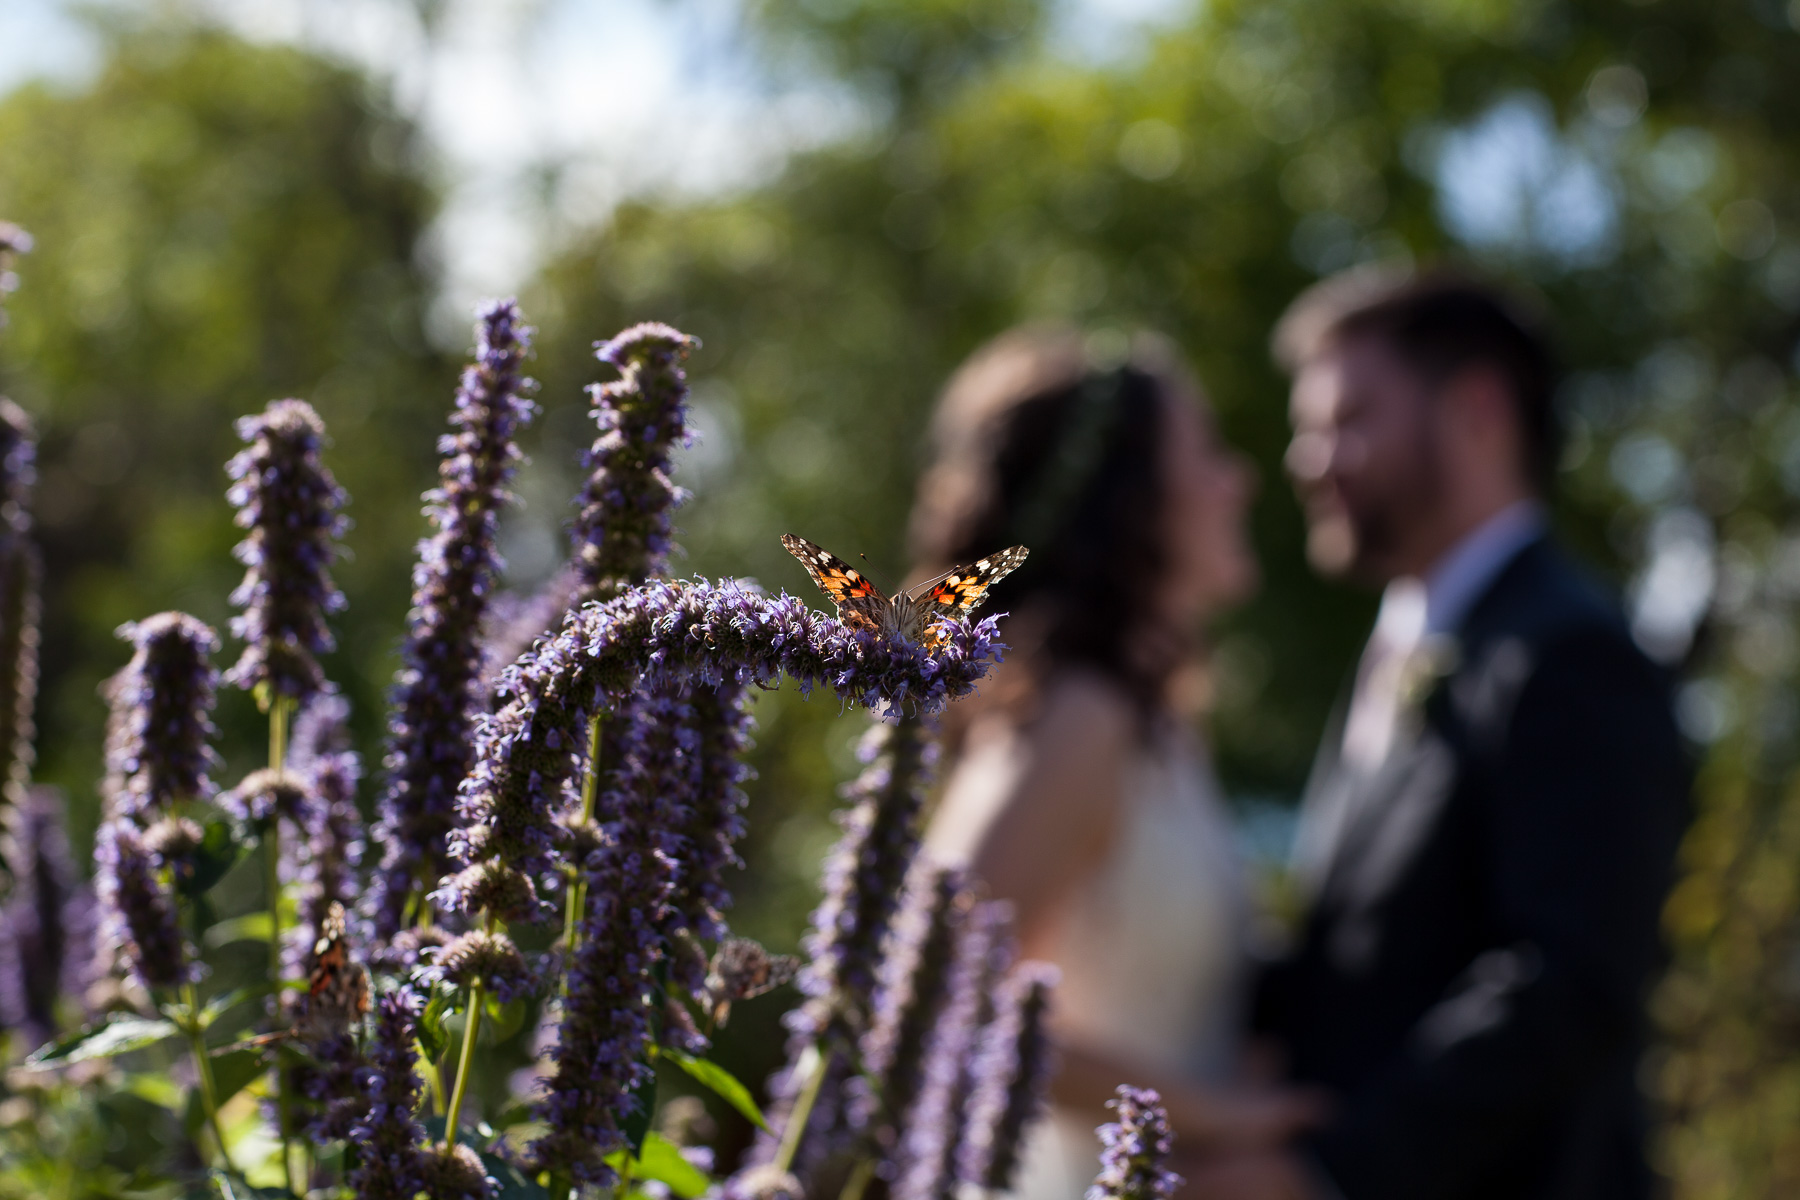 a butterfly sitting on a flower with a bride and groom in the background